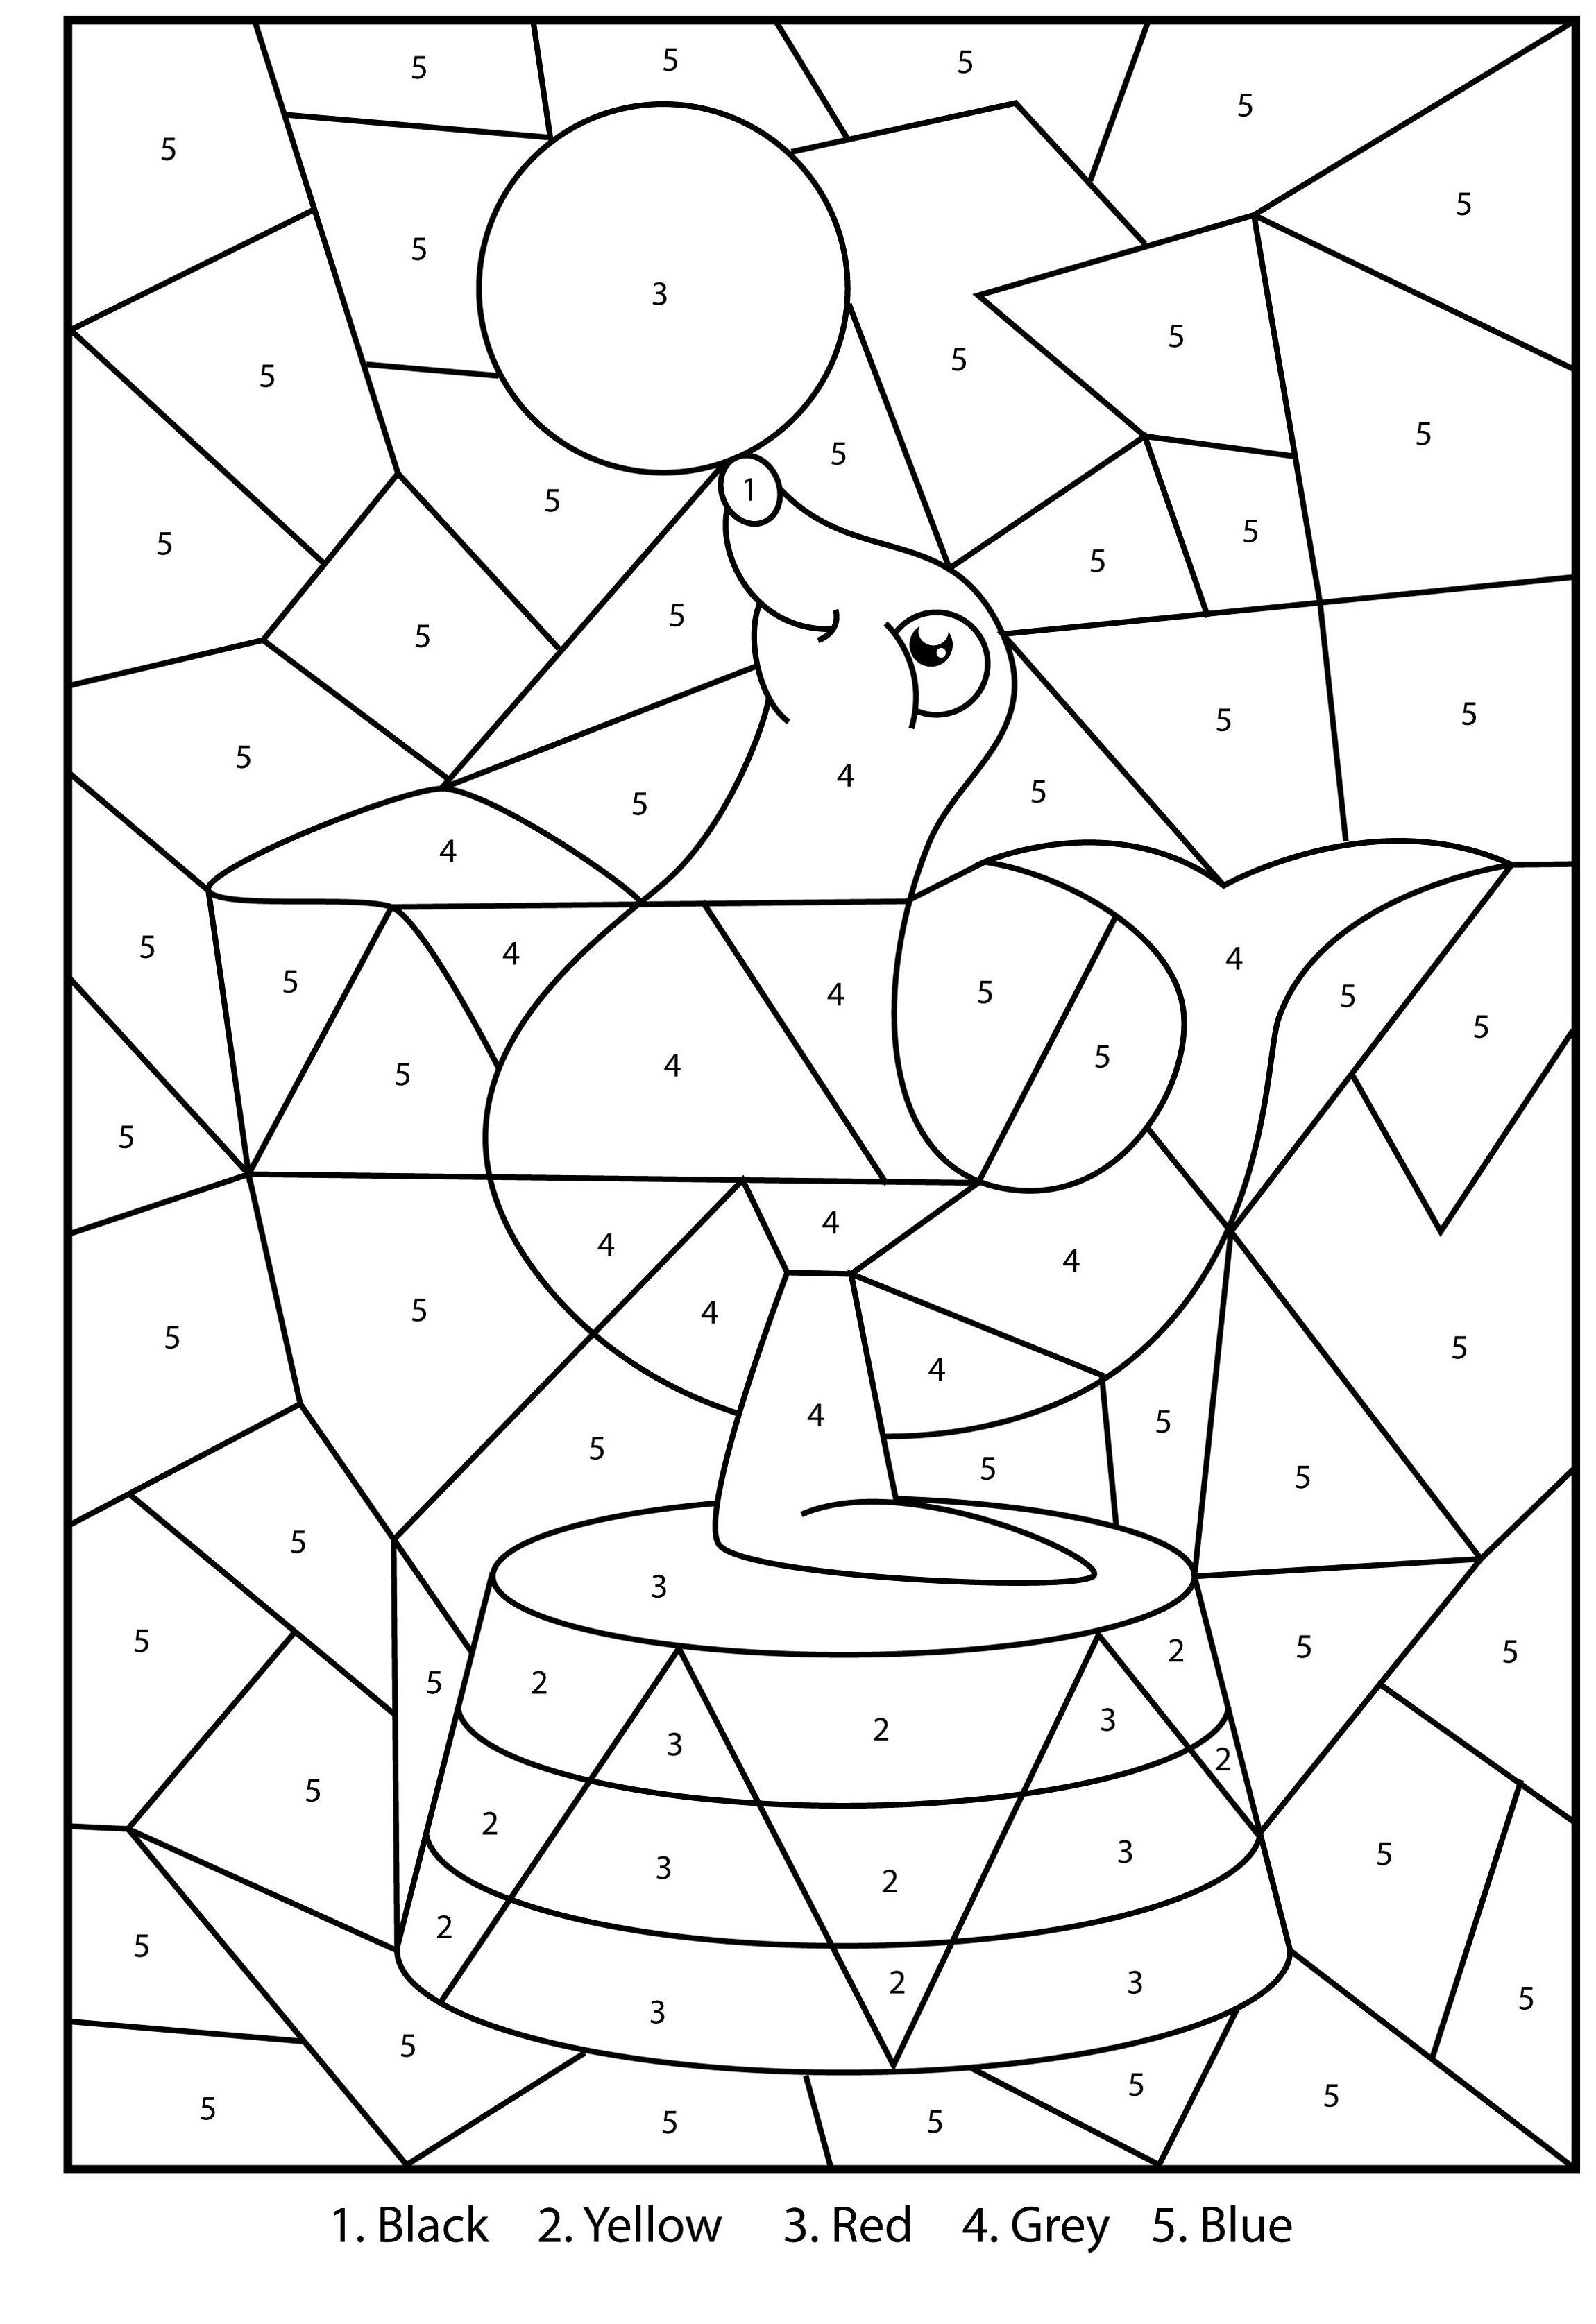 coloring pages 9 year old printable activities for 9 year olds color by number k5 old 9 year coloring pages